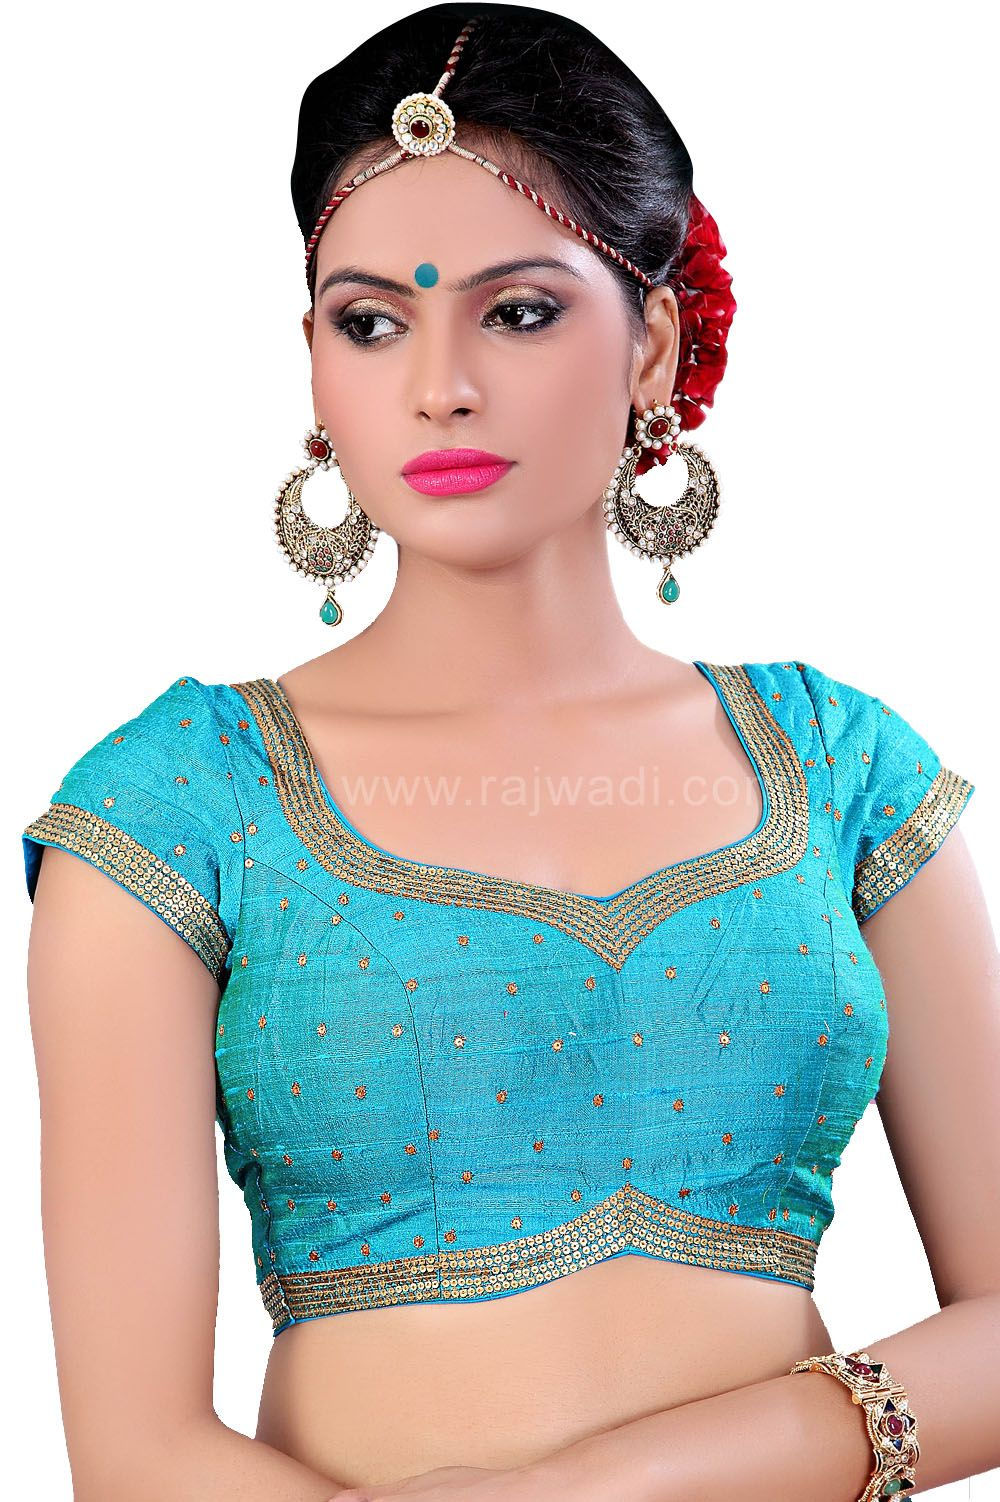 3a9d3b2465cddb Wonderful Sky Blue Coloured Ready Made Choli Saree Blouse Patterns, Saree  Blouse Designs, Blouse